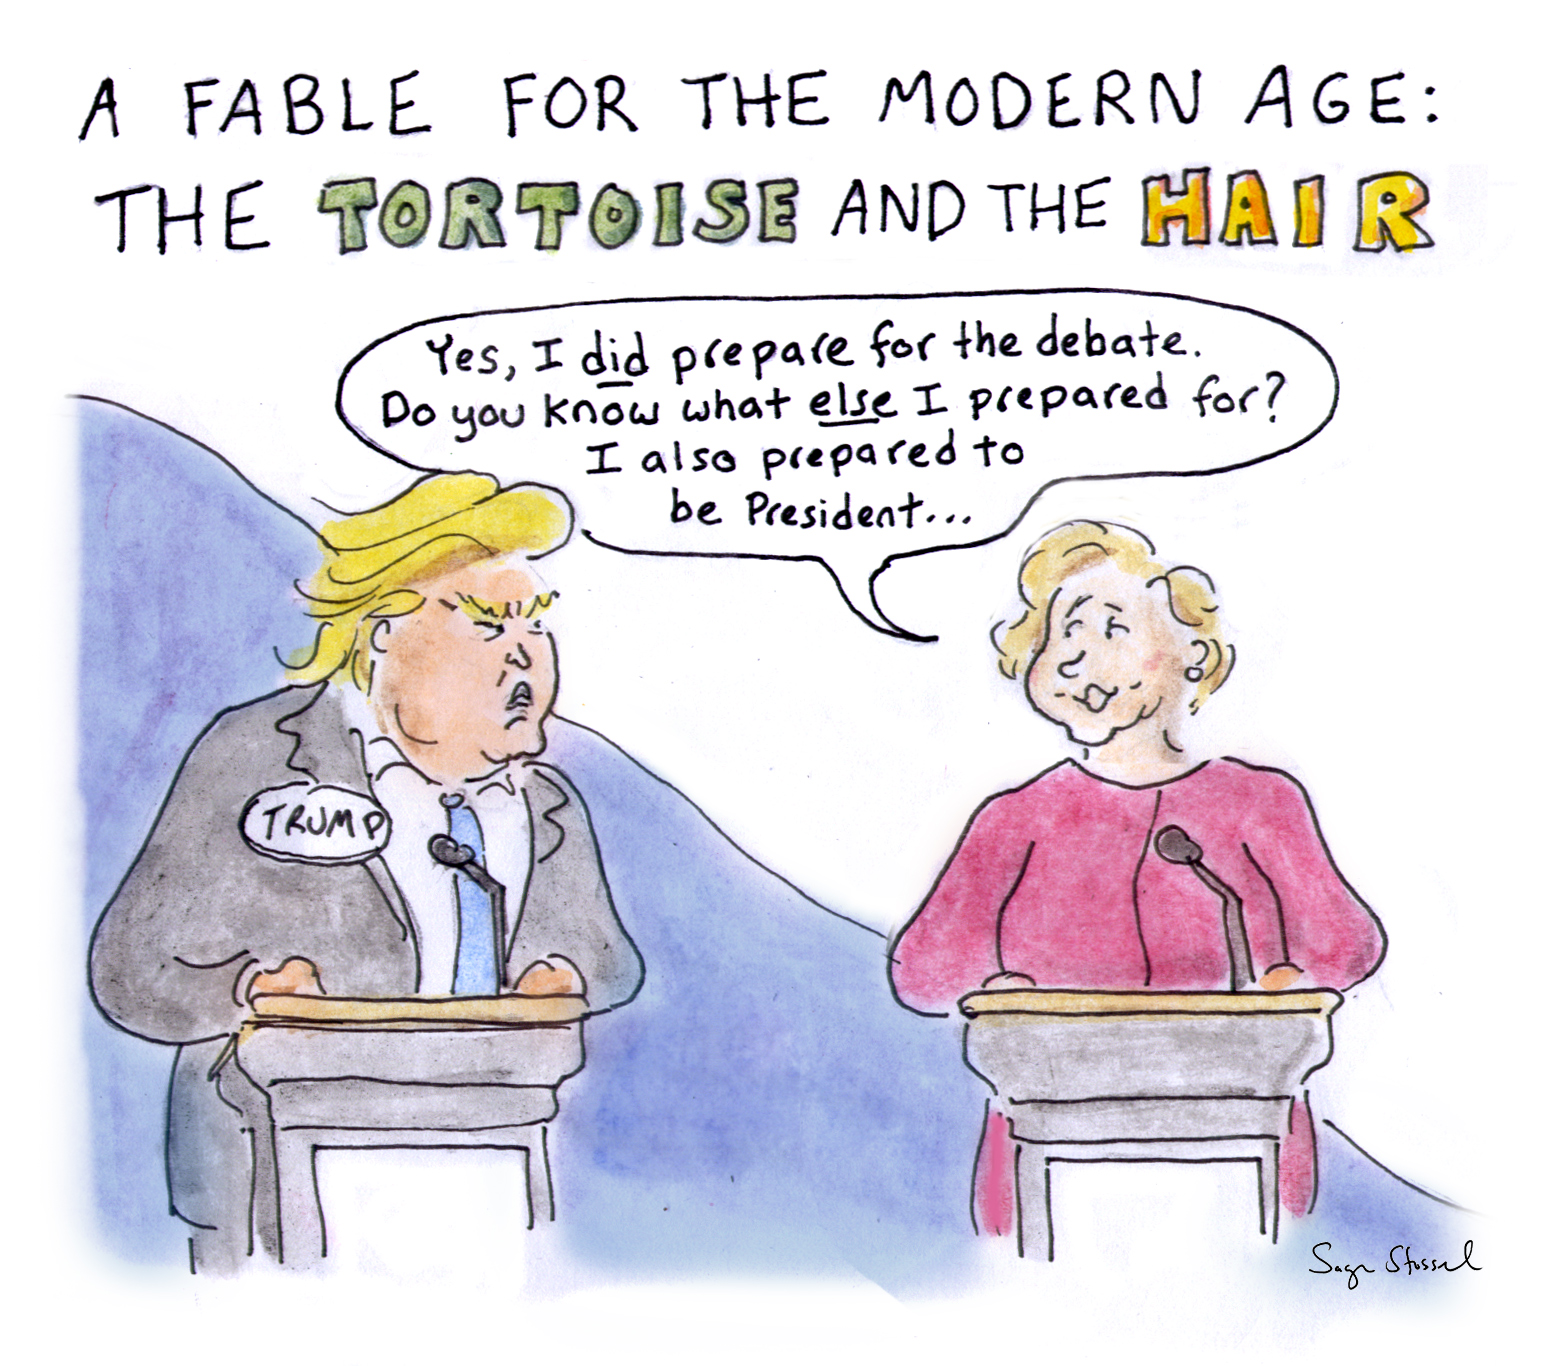 hofstra debate, trump, clinton, rosie o'donnell, debate preparation, interruption, sniff, microphone, lester holt, cartoon